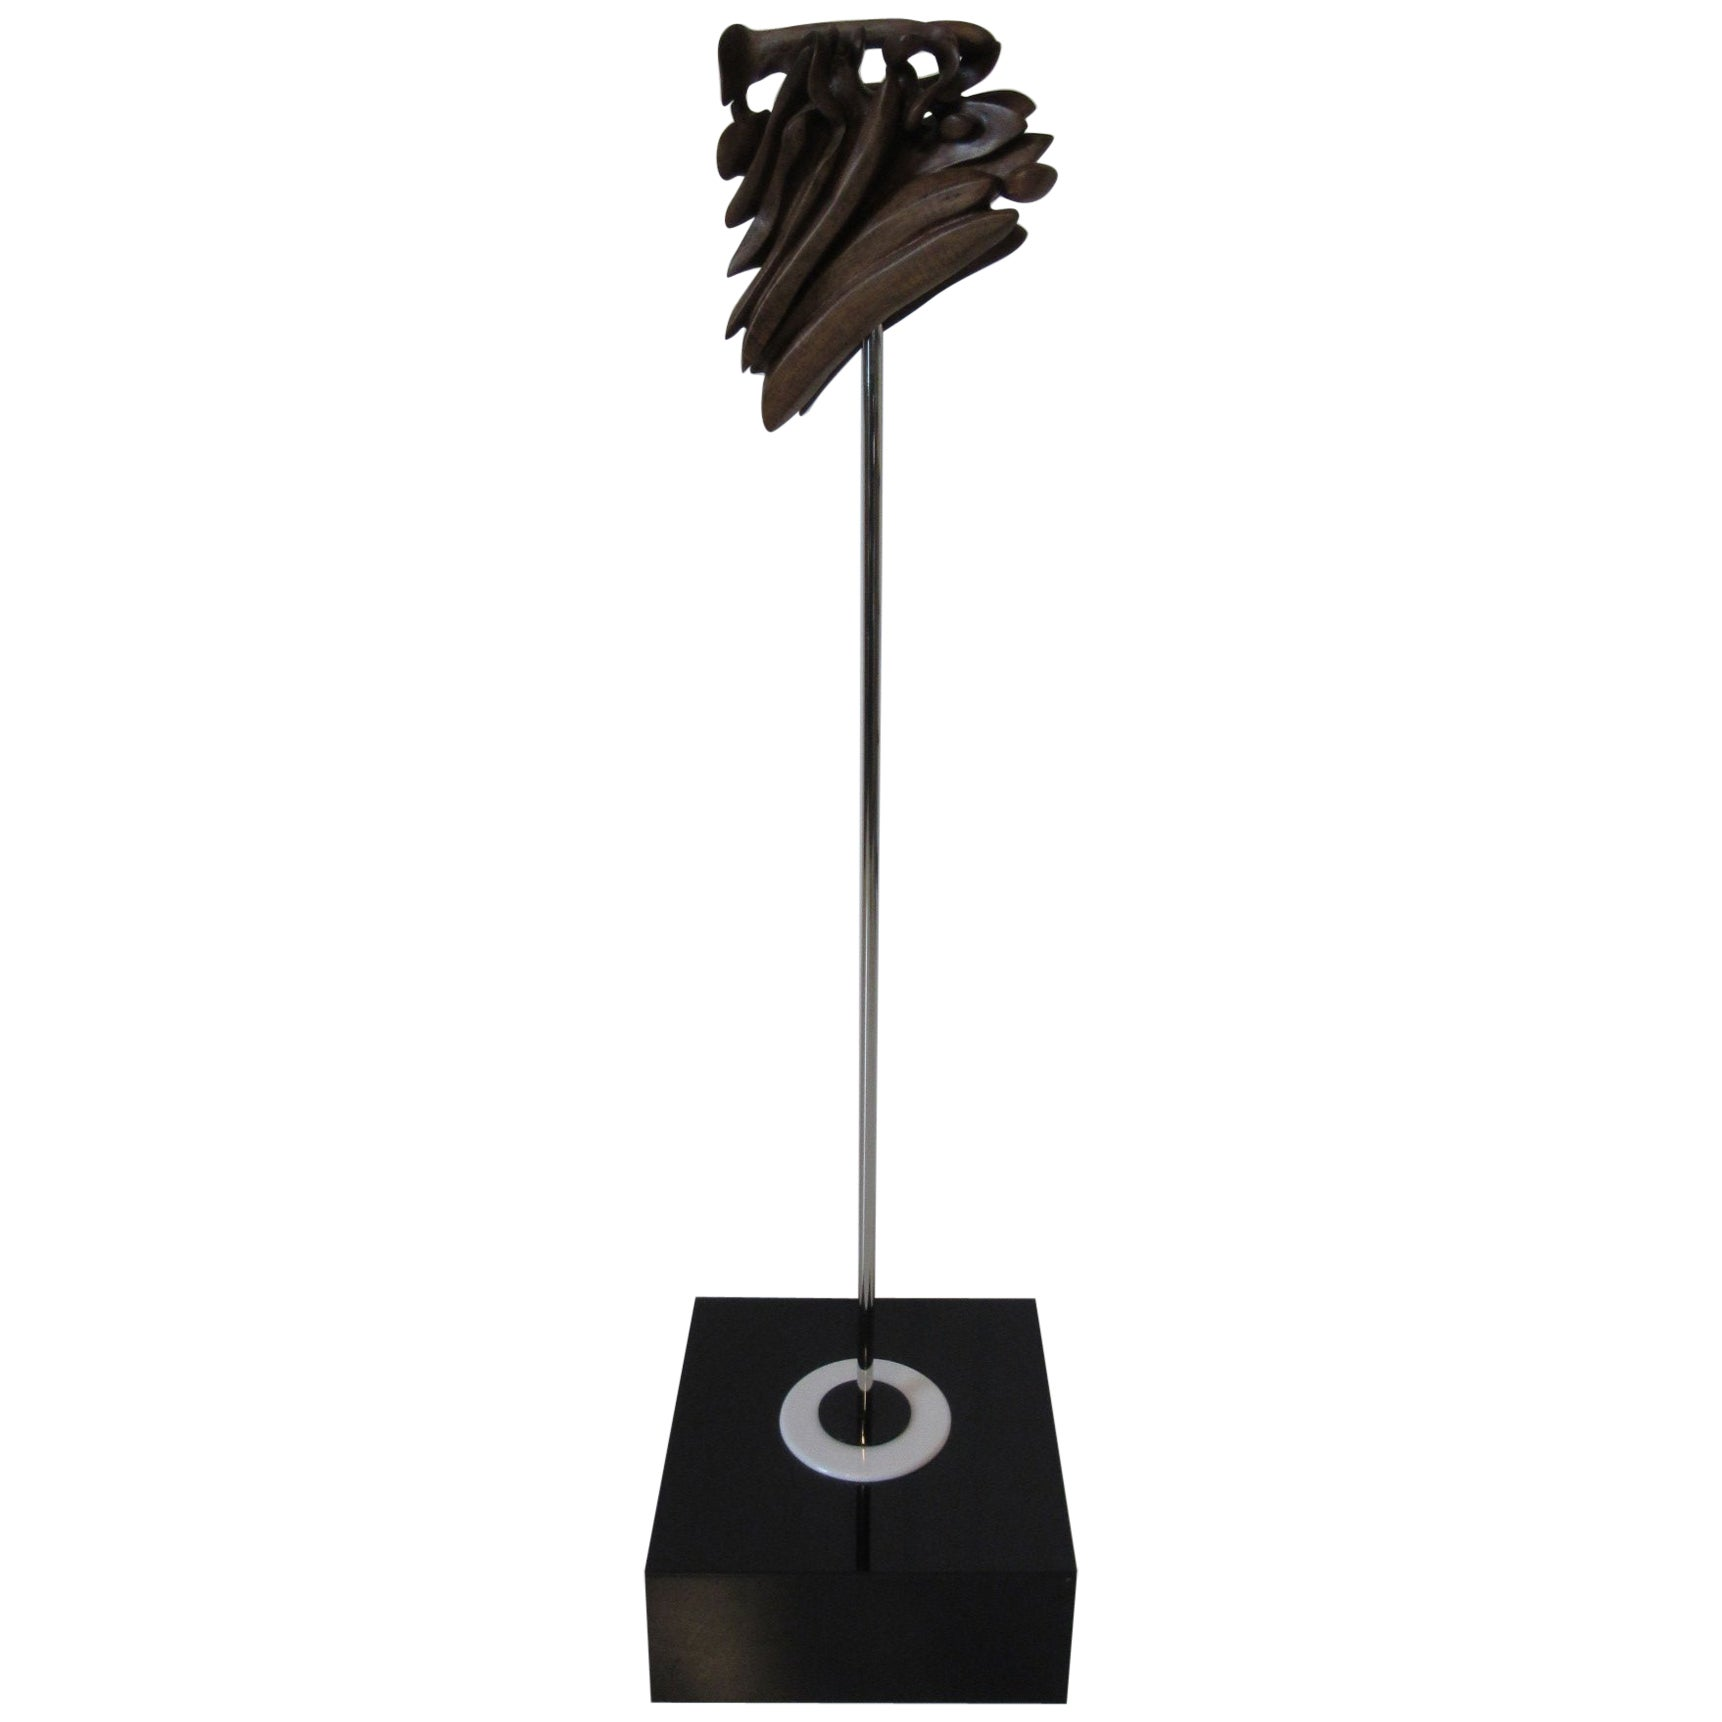 Carved Walnut Sculpture by Emil